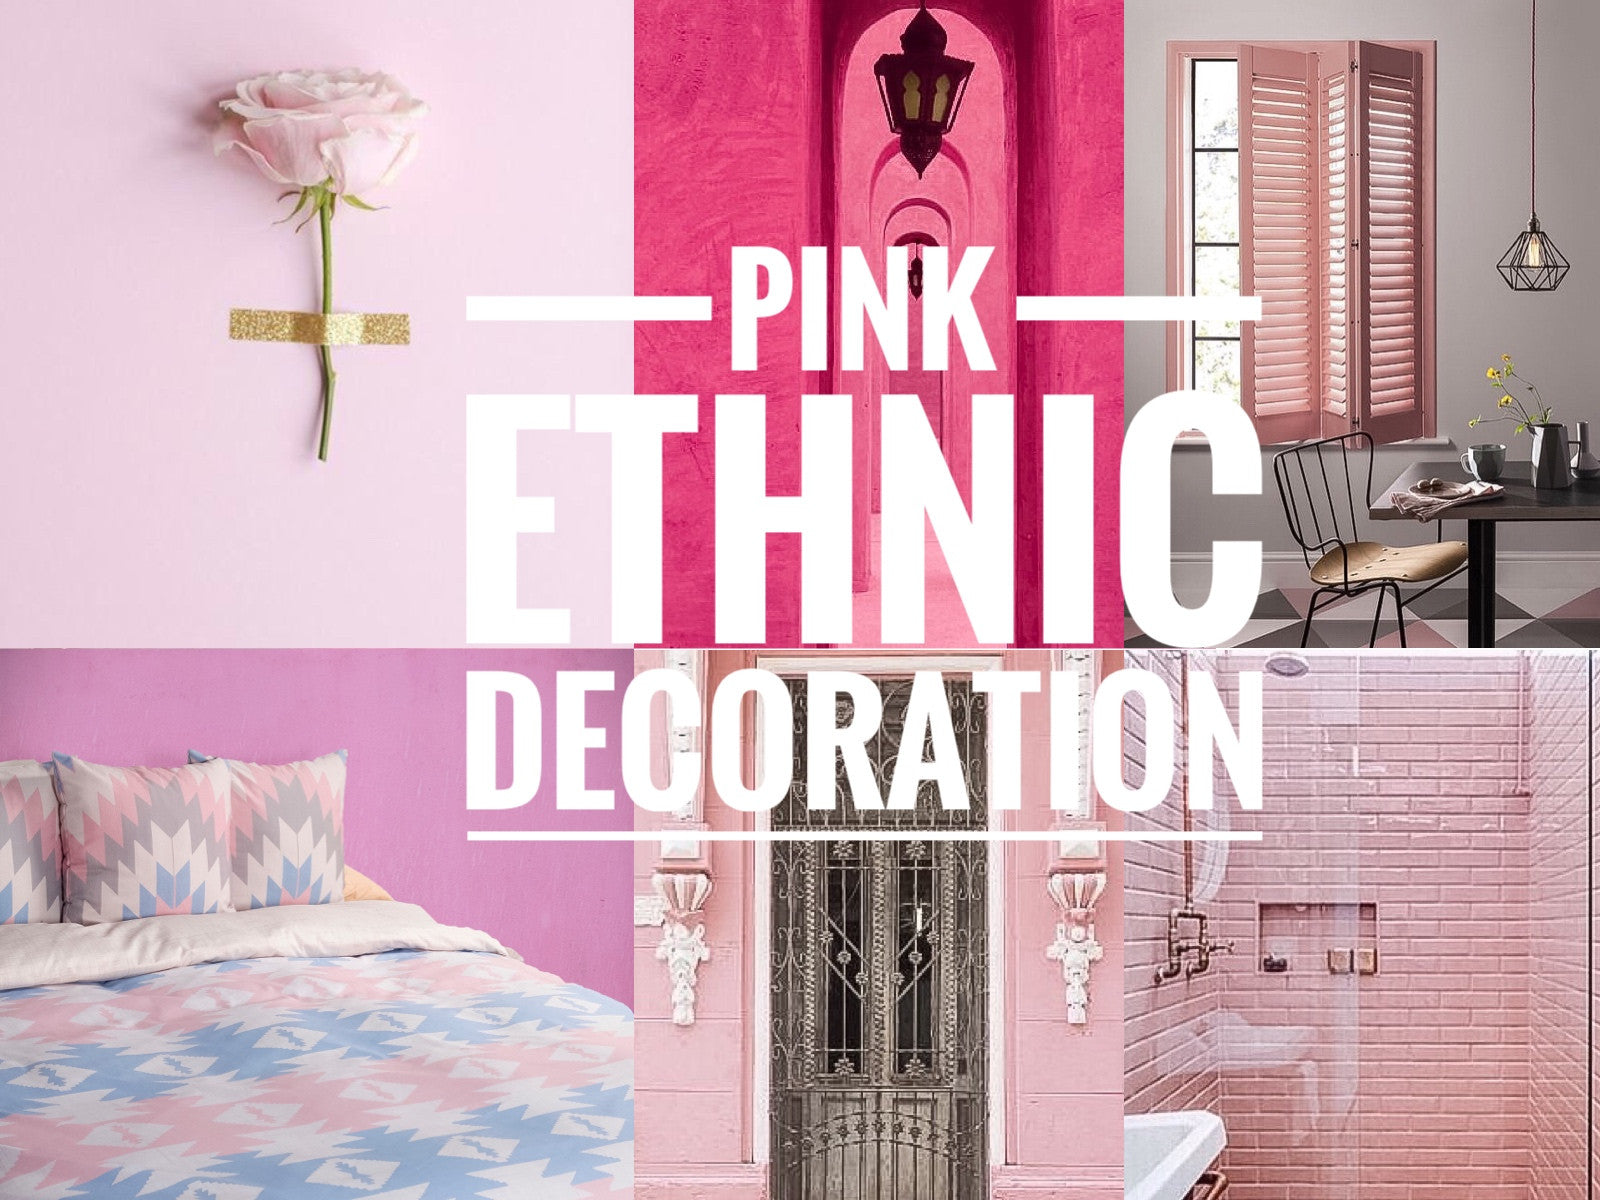 PINK ETHNIC DECORATION